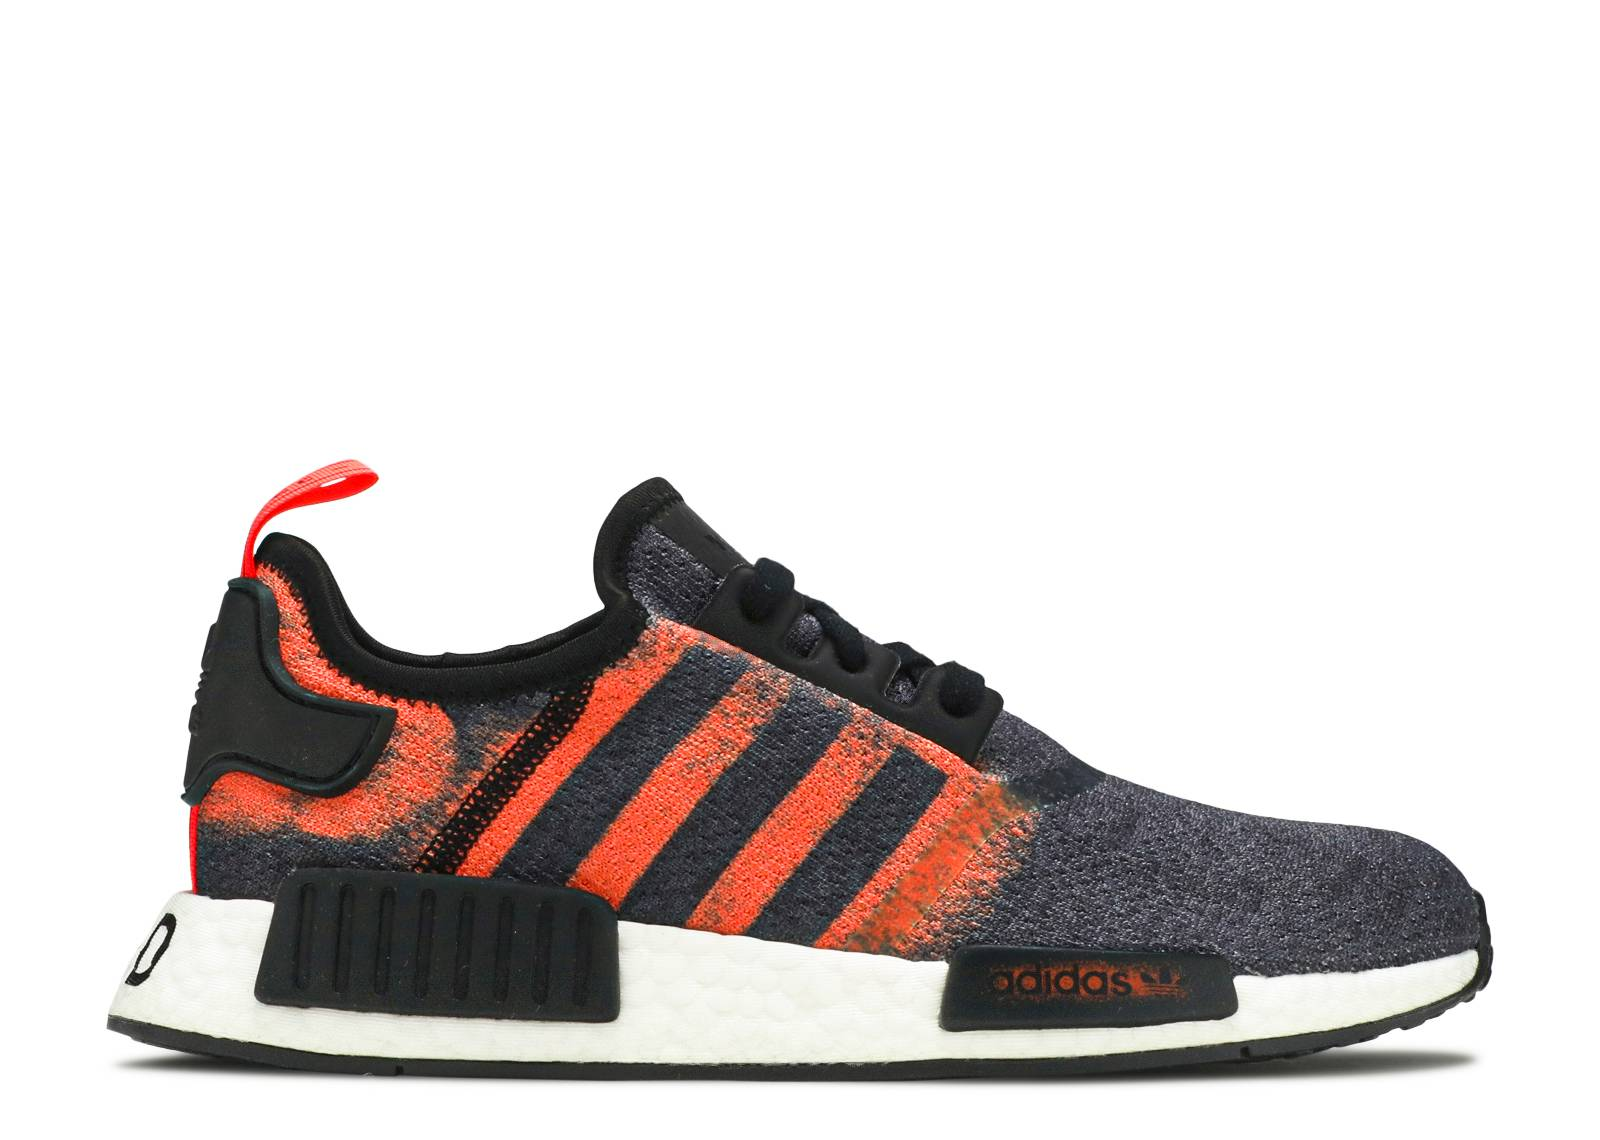 cca236d1f Adidas NMD - adidas Originals Men s   Women s Shoes